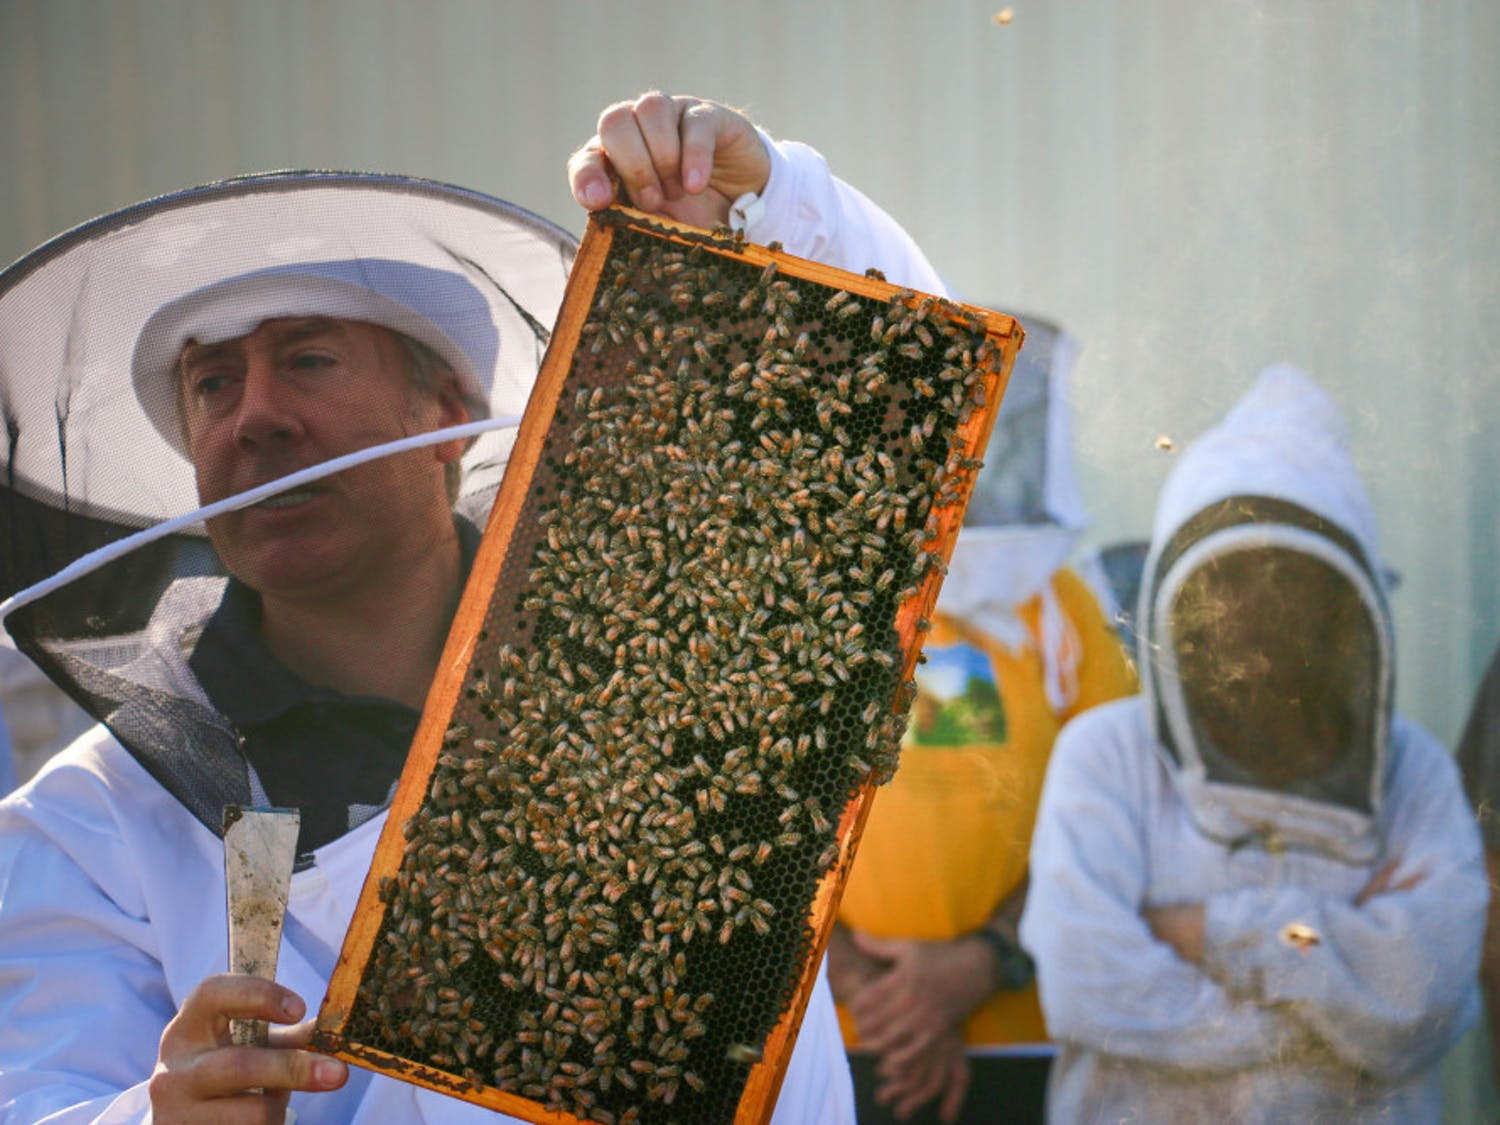 After explaining to Bee College 2018 attendees how to split beehives, Rob Horsburgh, 43, demonstrates the steps Friday, Oct. 14, 2018. The event was hosted by the UF IFAS Honey Bee Research and Extension Lab and offered a variety of classes on beekeeping.